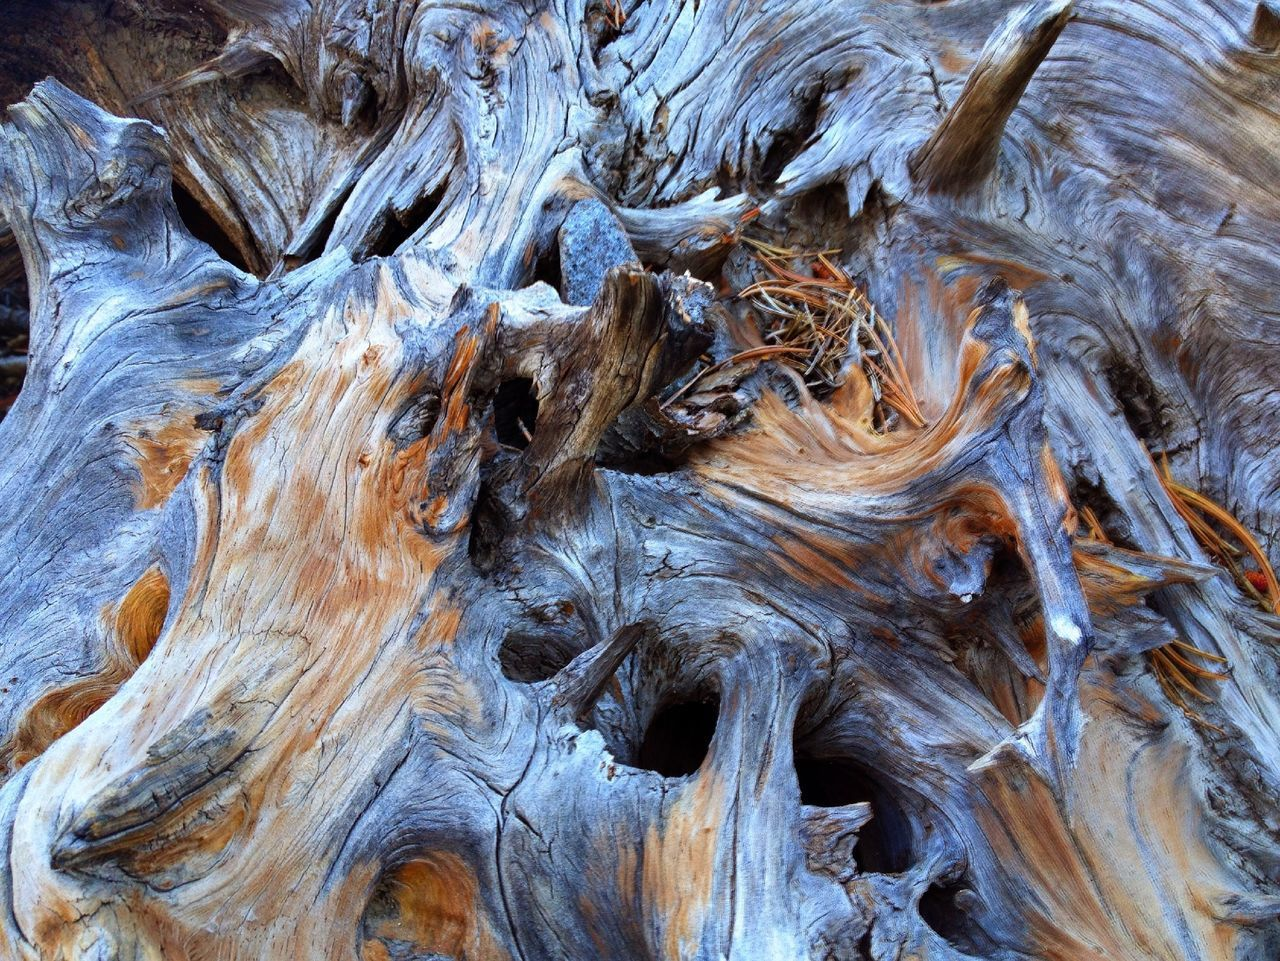 Close-up view of drift wood